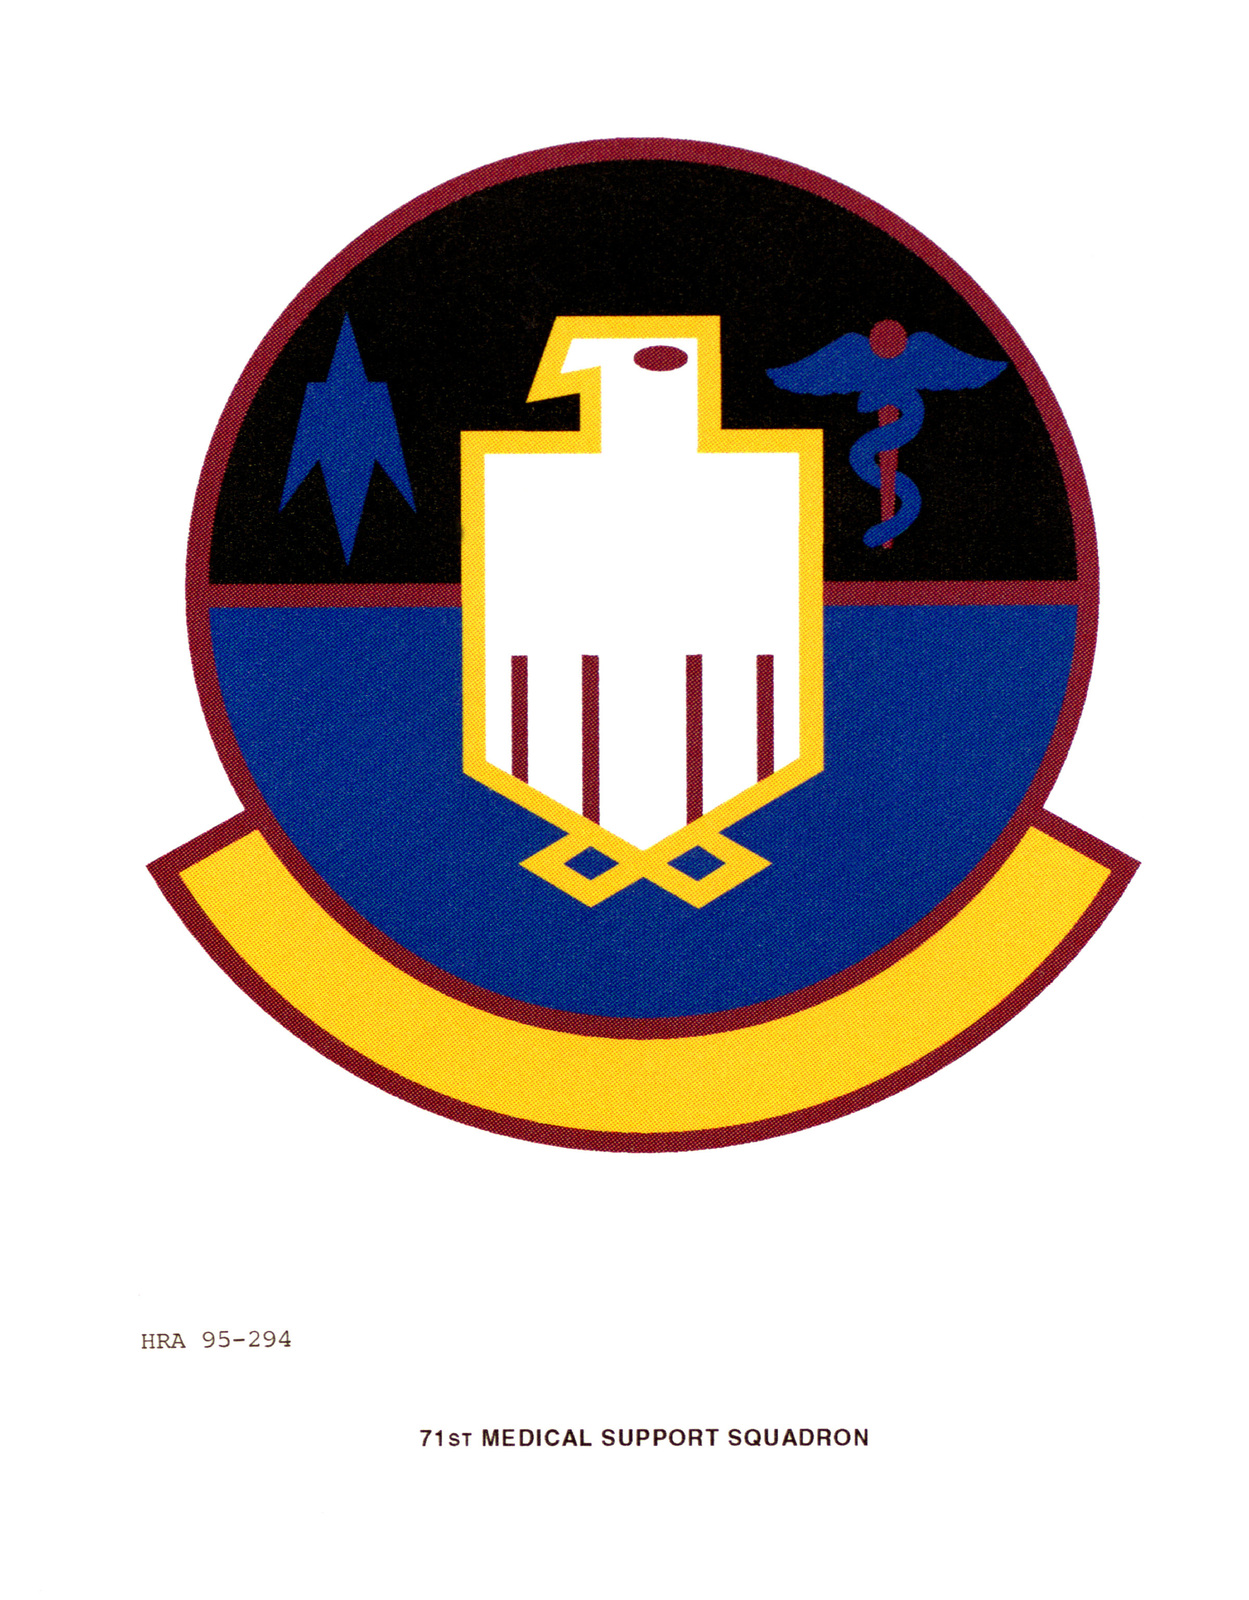 Approved insignia for the 71st Medical Support Squadron Exact date Shot Unknown